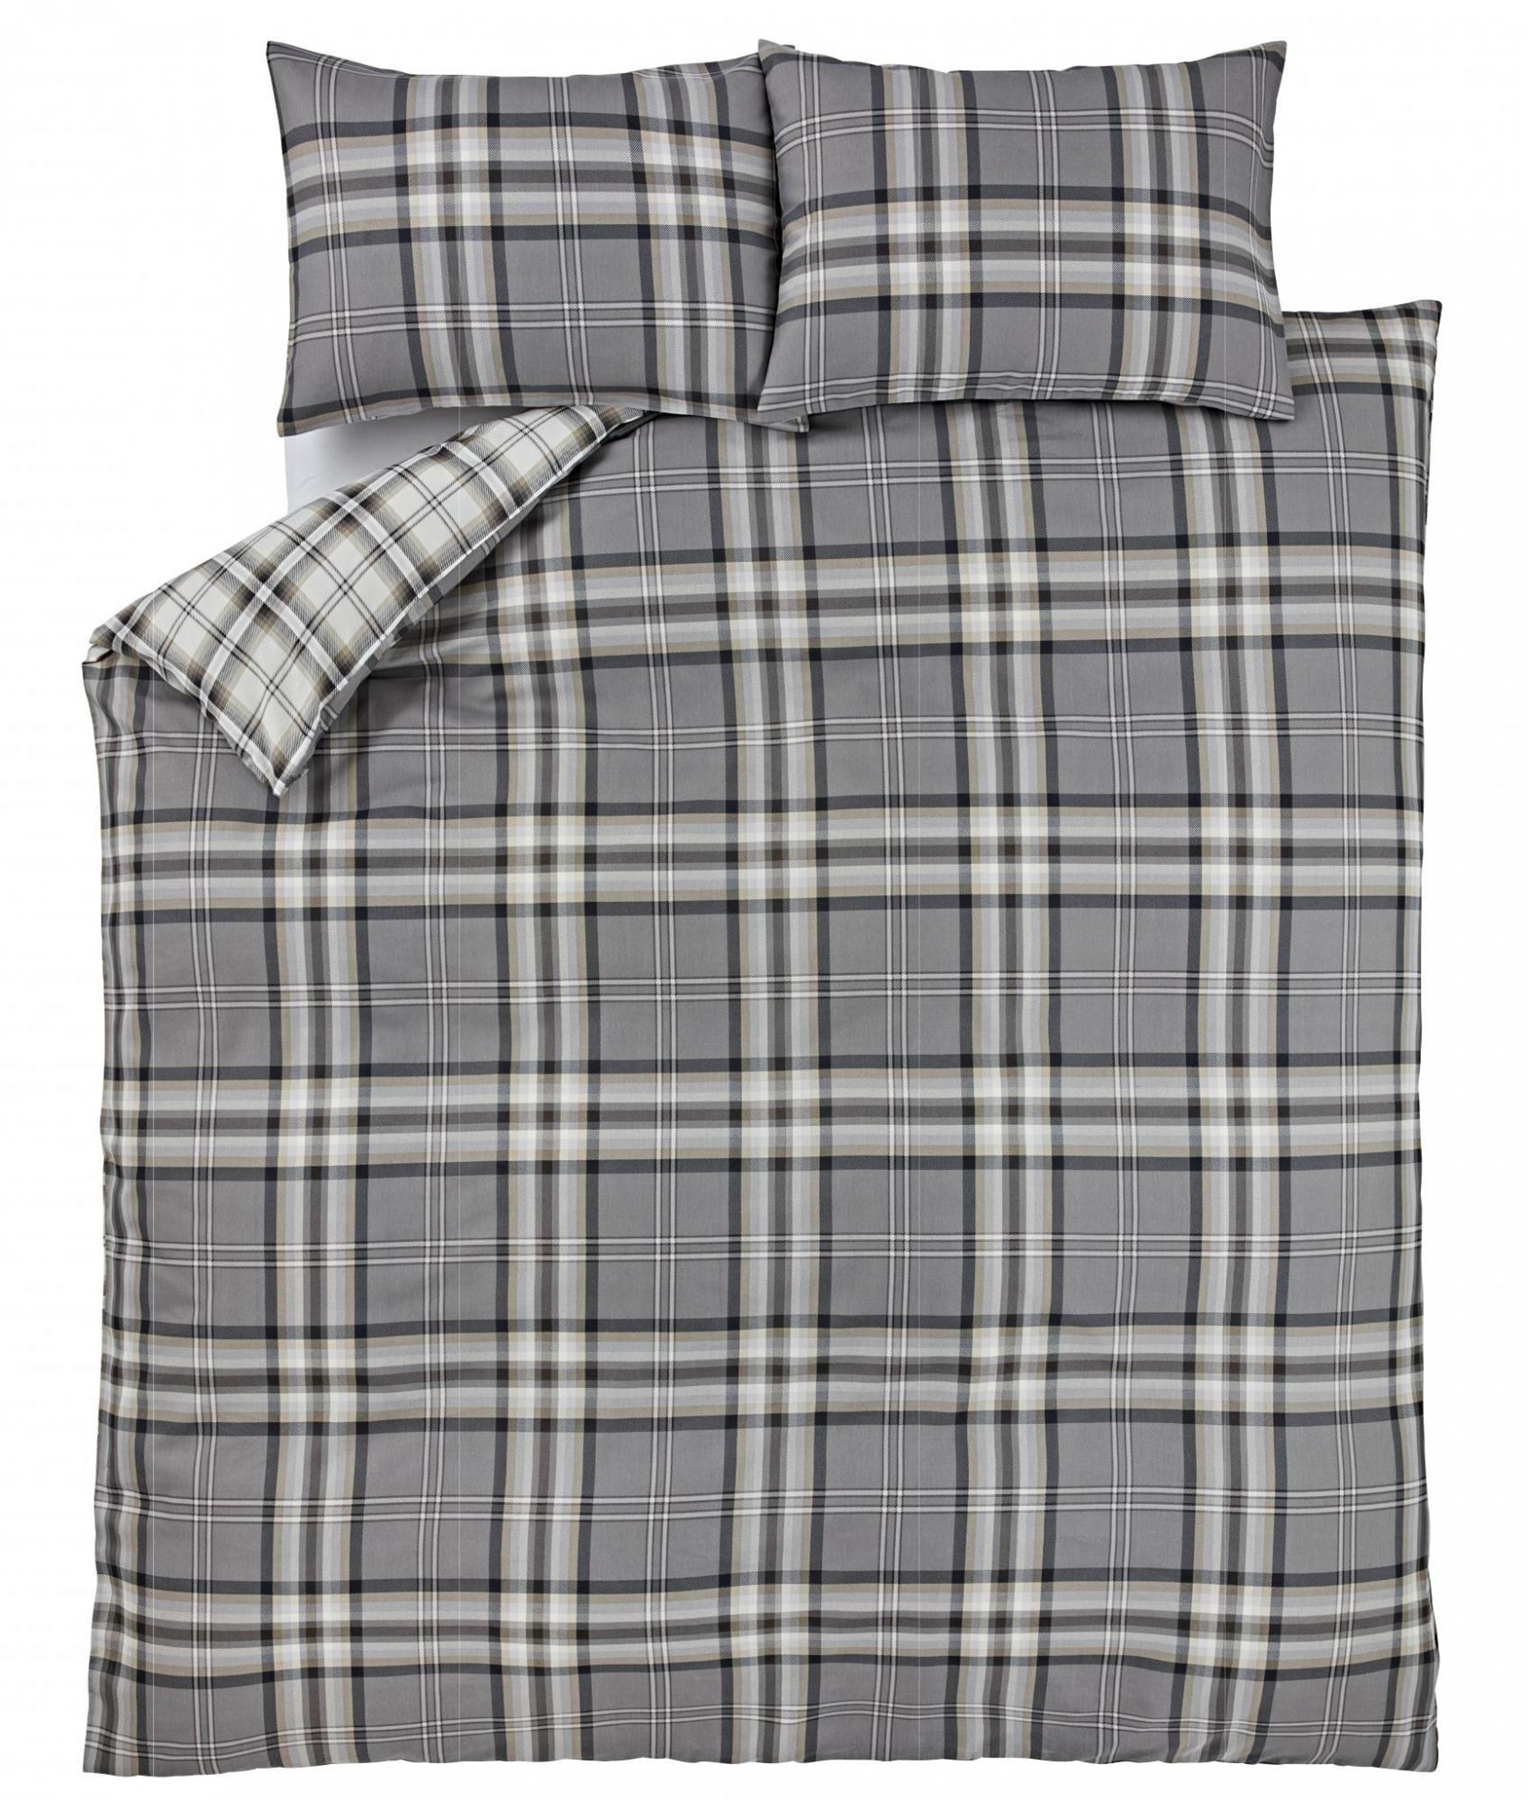 Catherine-Lansfield-Duvet-Set-Reversible-Check-Bedding-Charcoal-Pillows-Curtain thumbnail 13